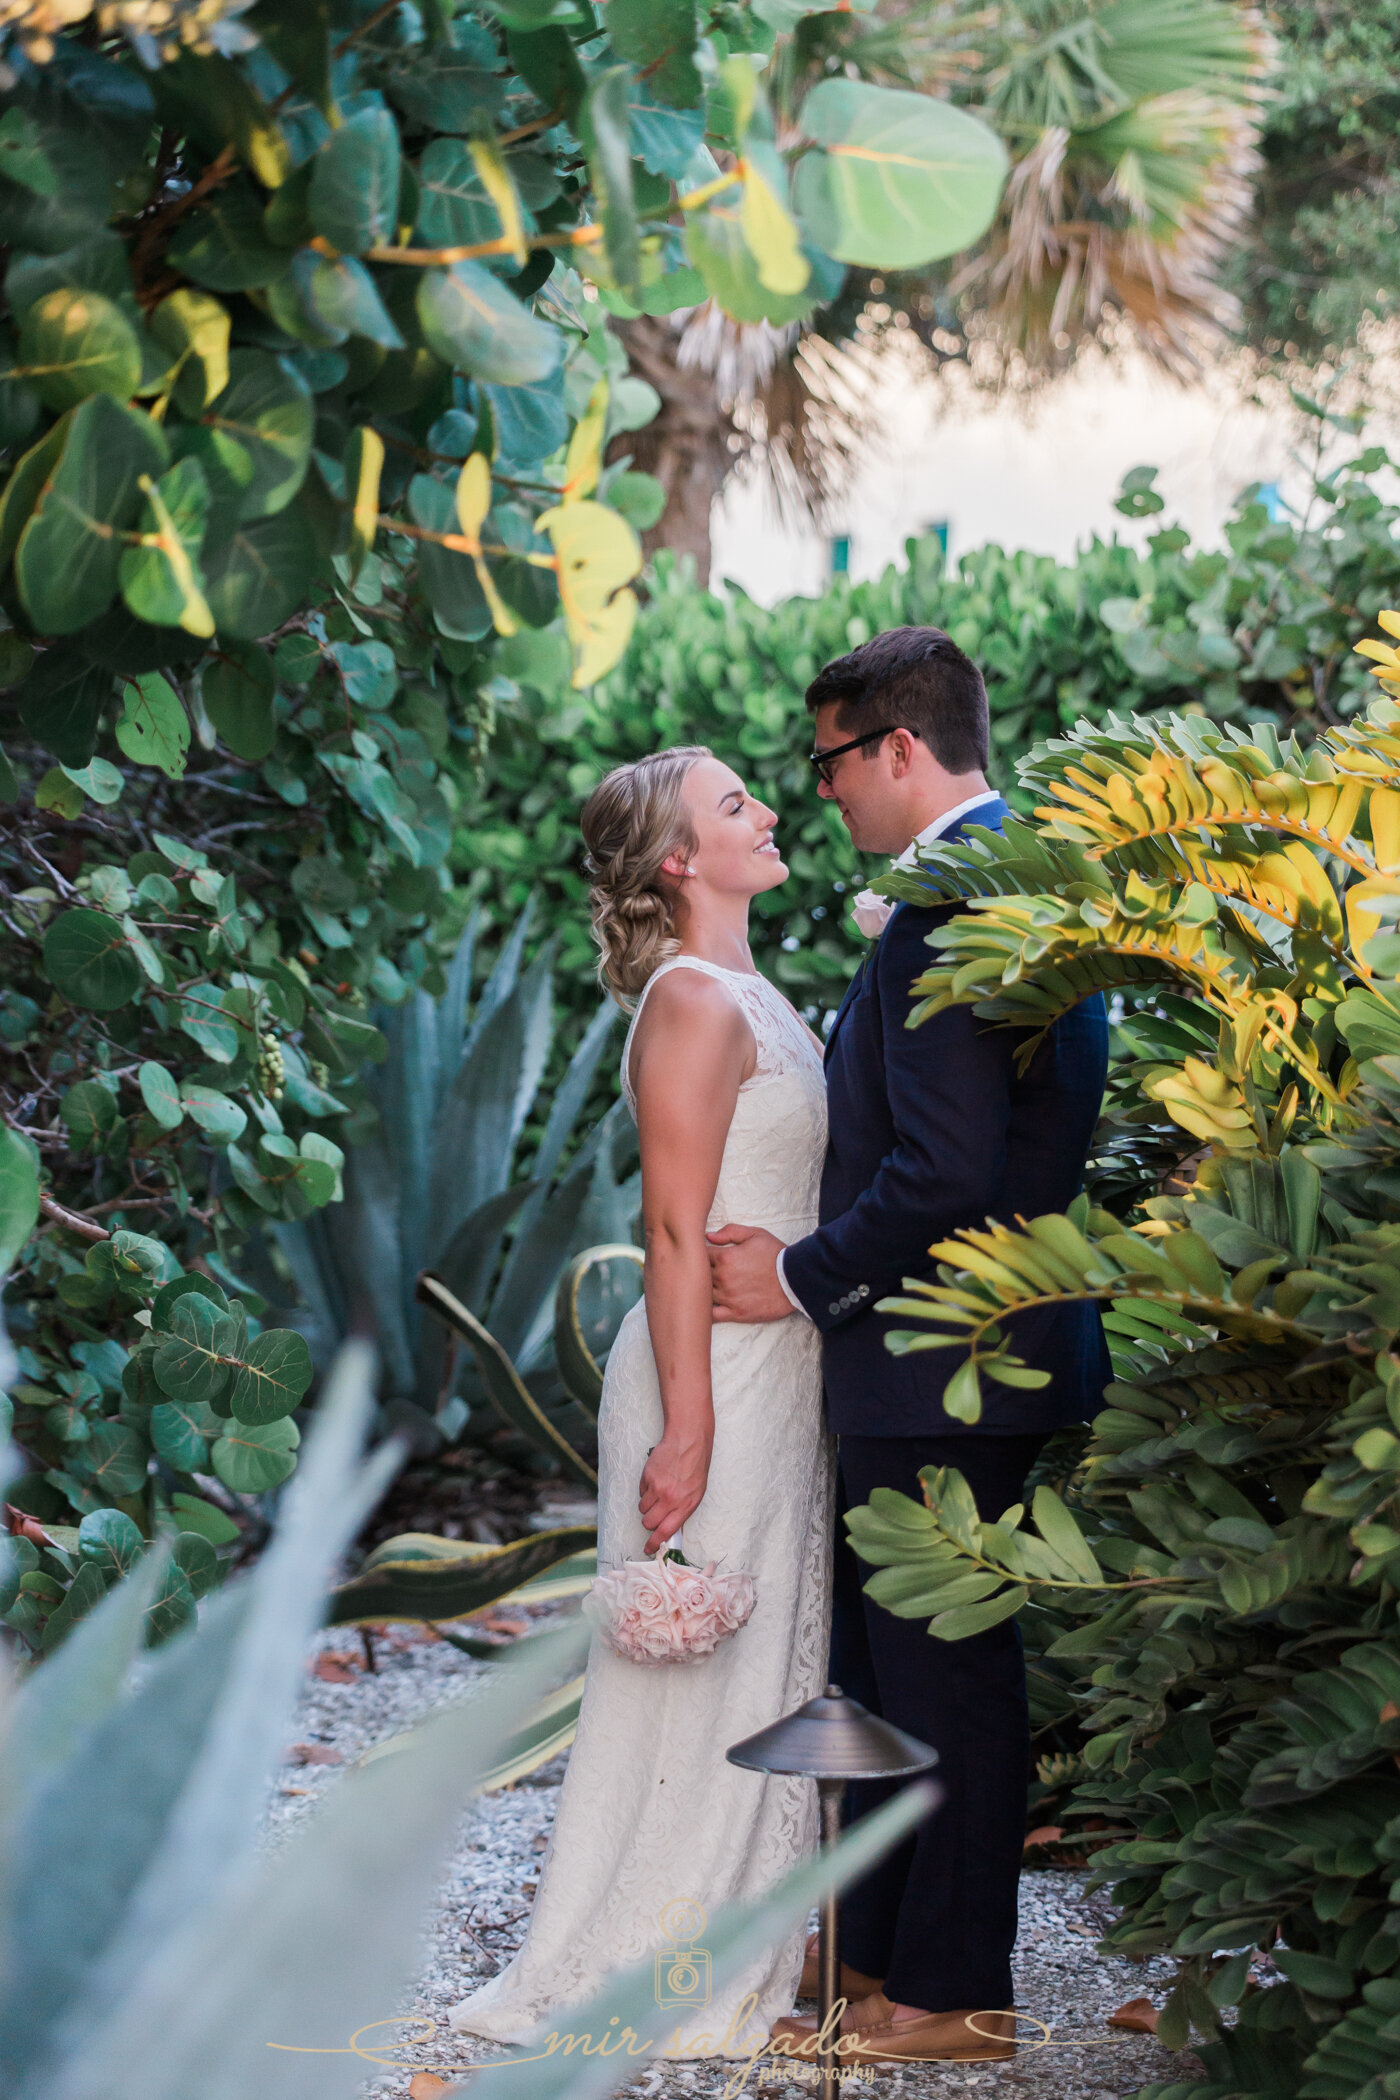 bride-and-groom-photography, bride-and-groom-on-beach, beach-wedding, longboat-key-florida-beach-wedding, florida-wedding, wedding-inspo, wedding-inspiration